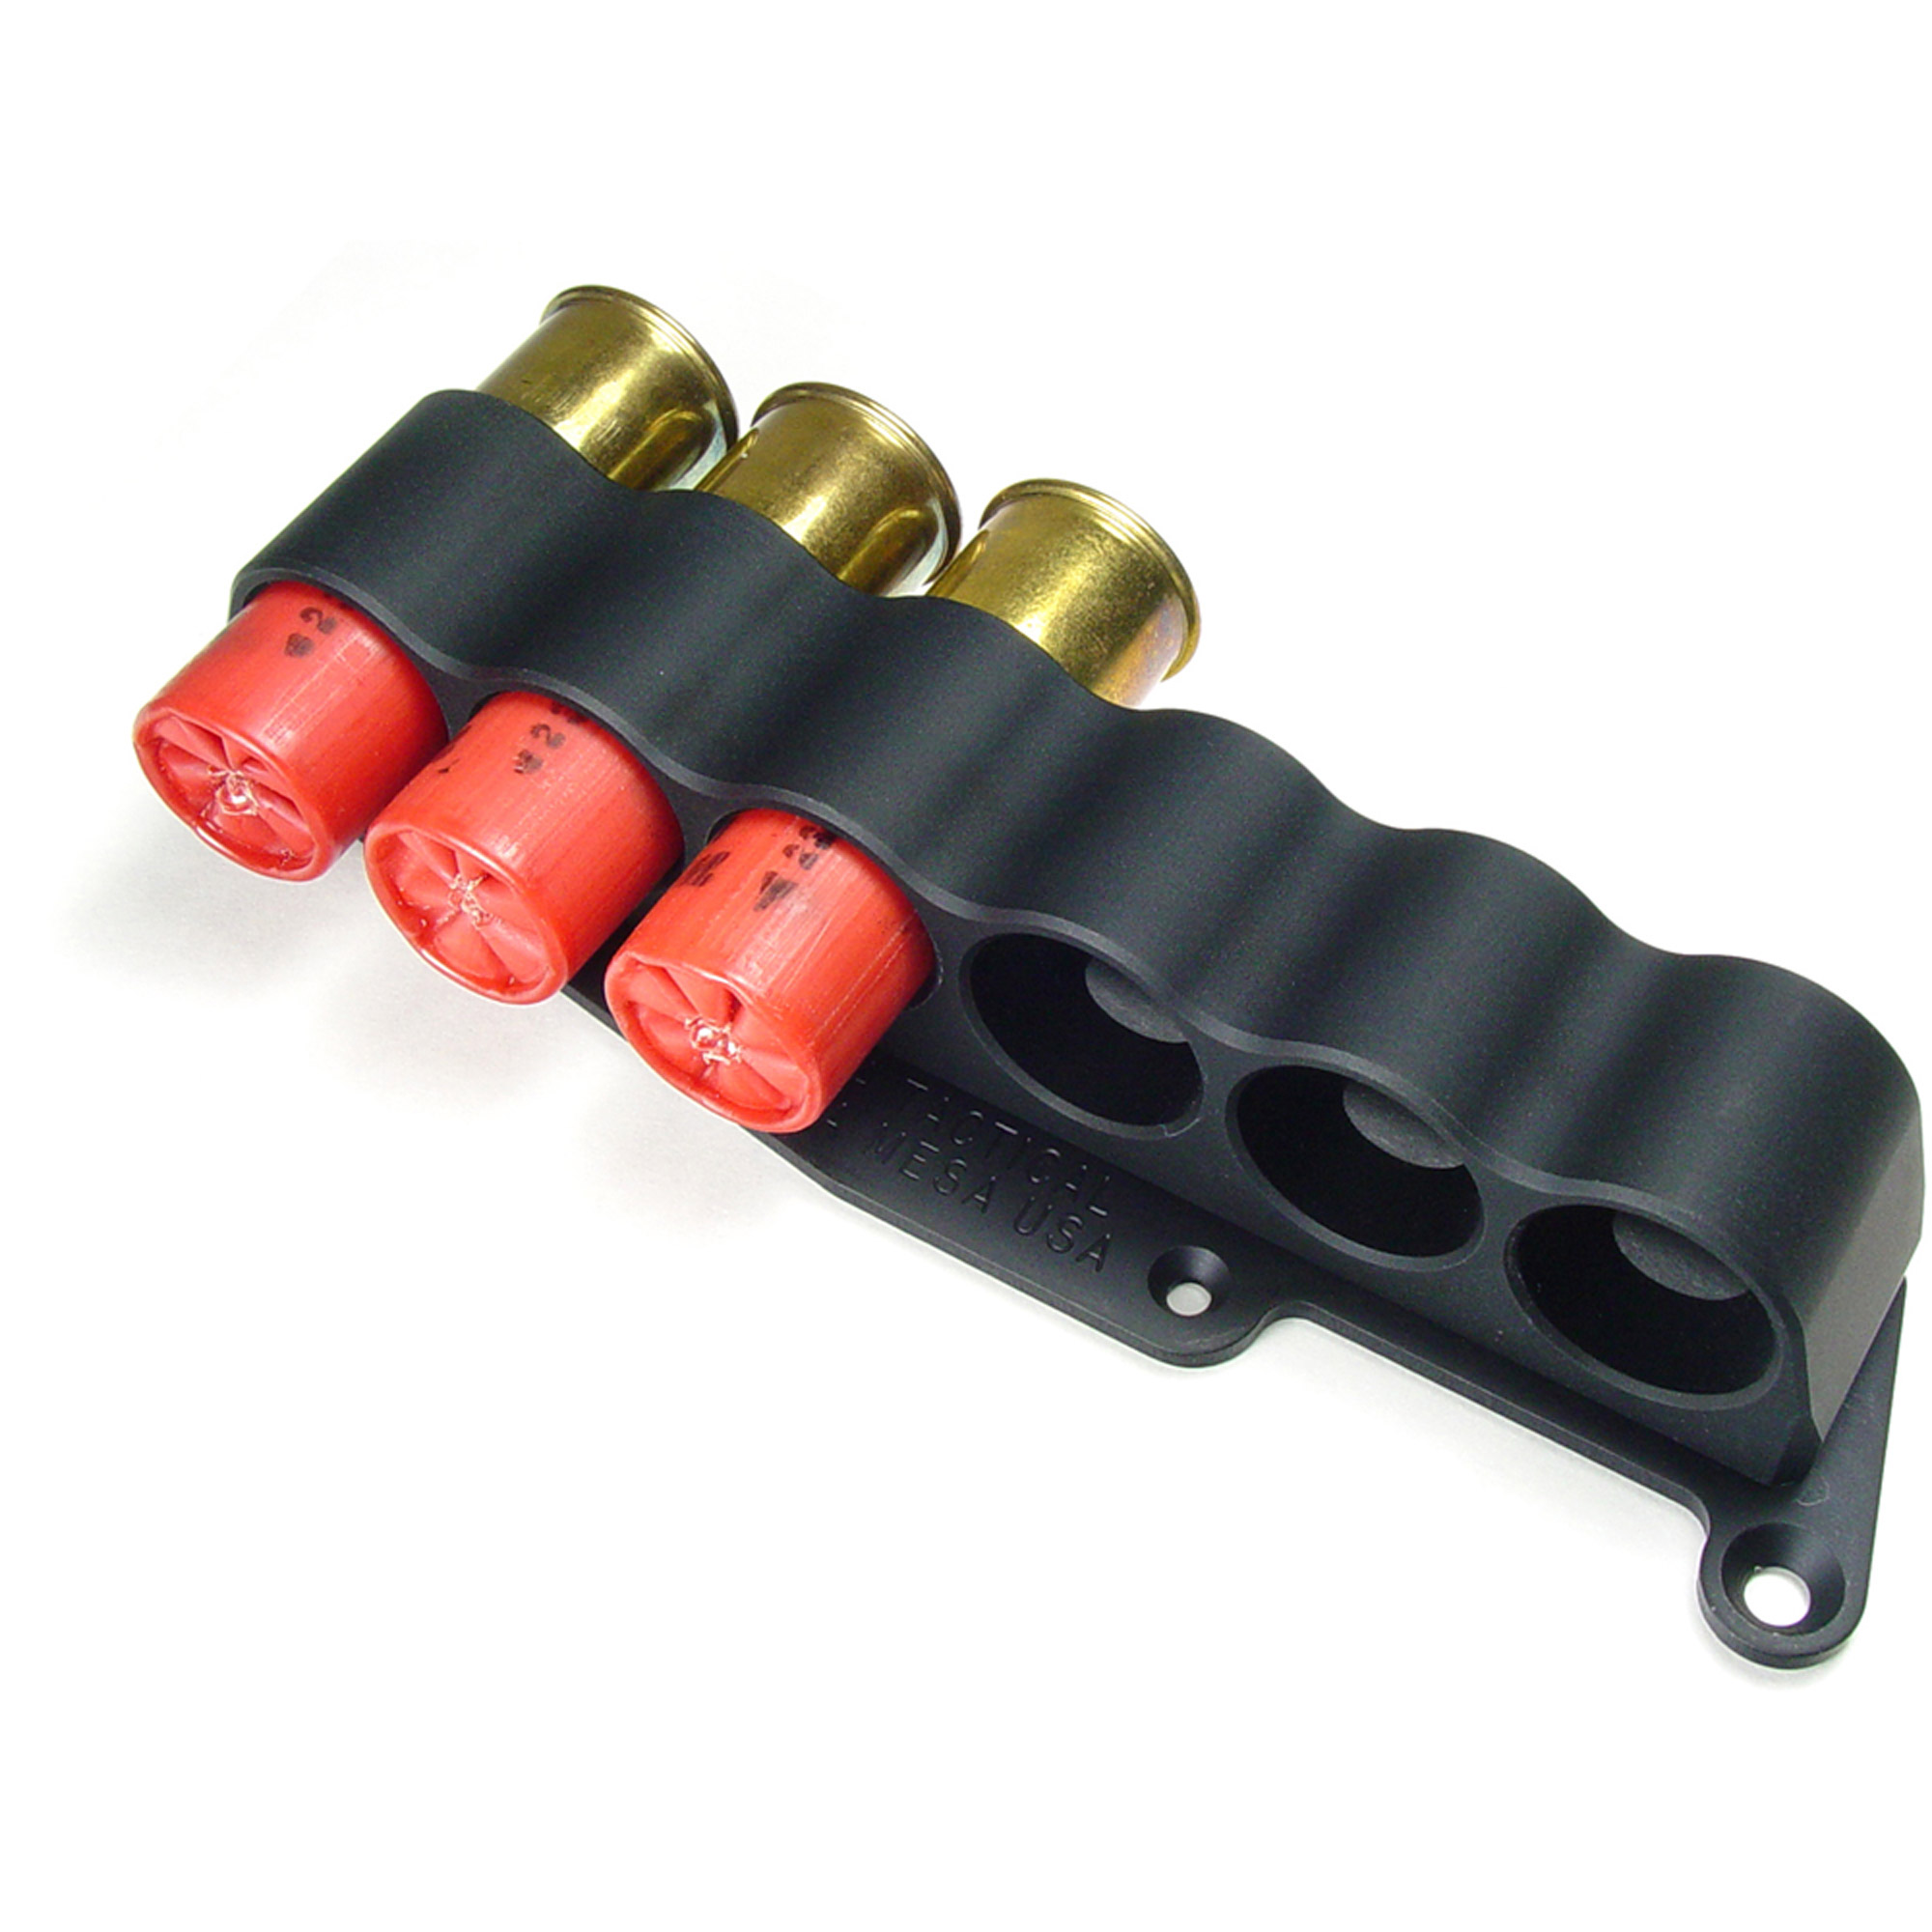 Mesa Tactical 6-Shell Side Saddle, 12 Gauge, Rugged, Reliable On-gun Shotshell Carriers, Fits Remington 870, Black